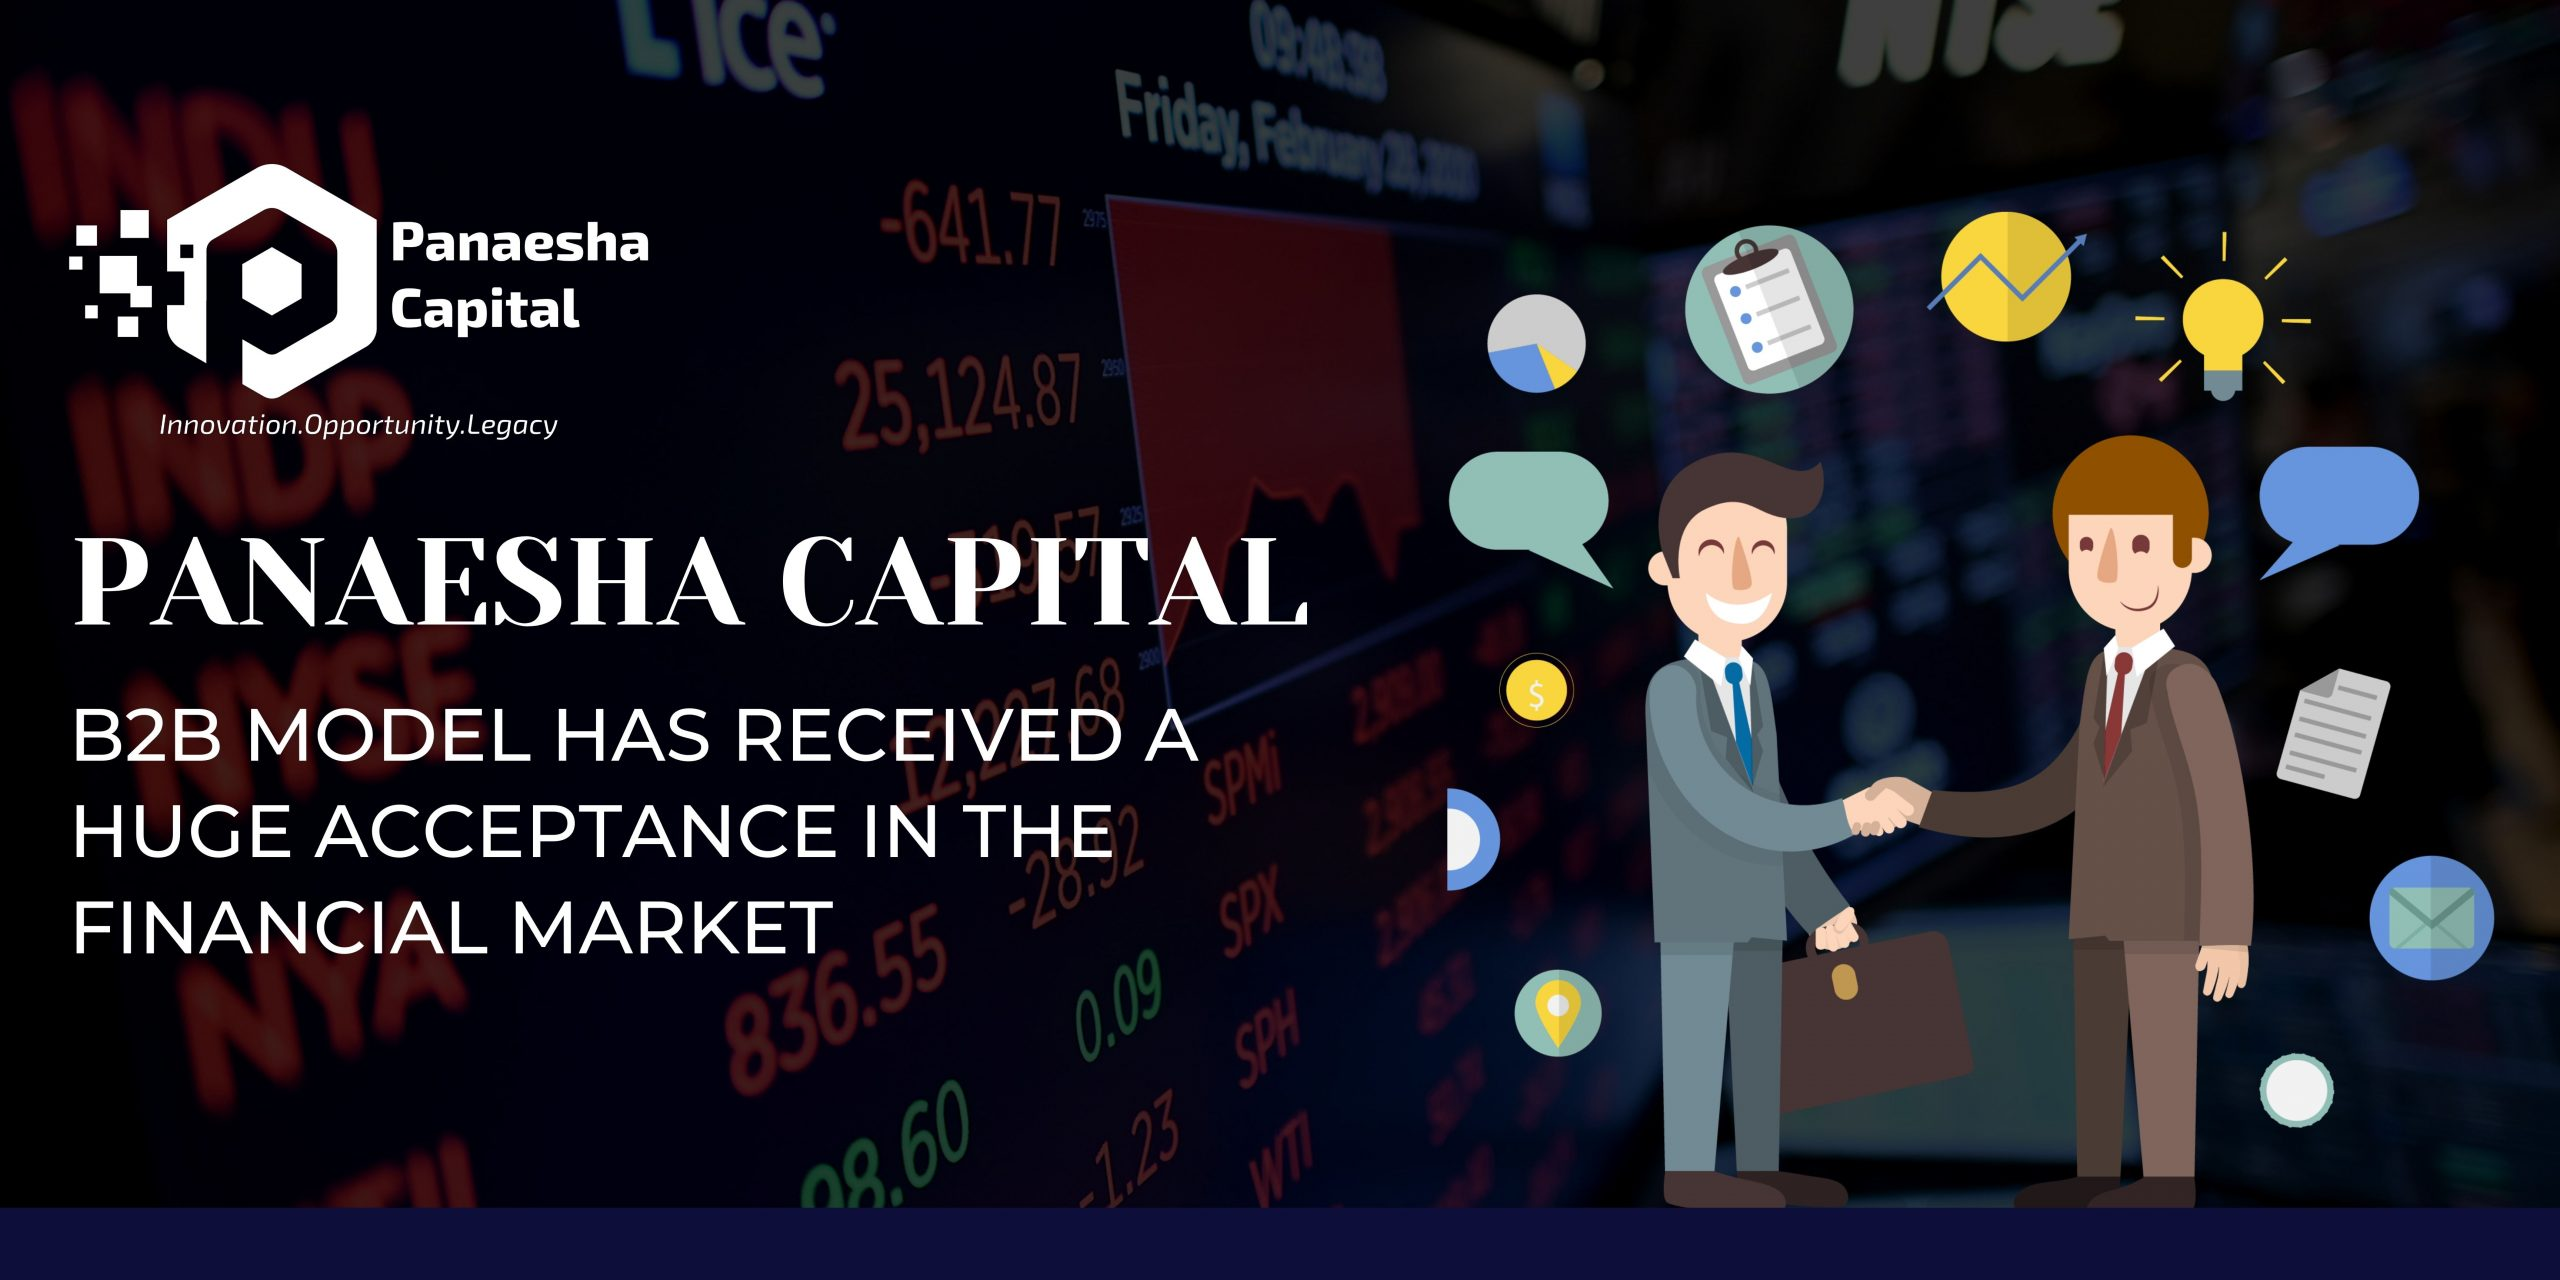 Panaesha Capital B2B Model Has Received a Huge Acceptance in the Financial Market